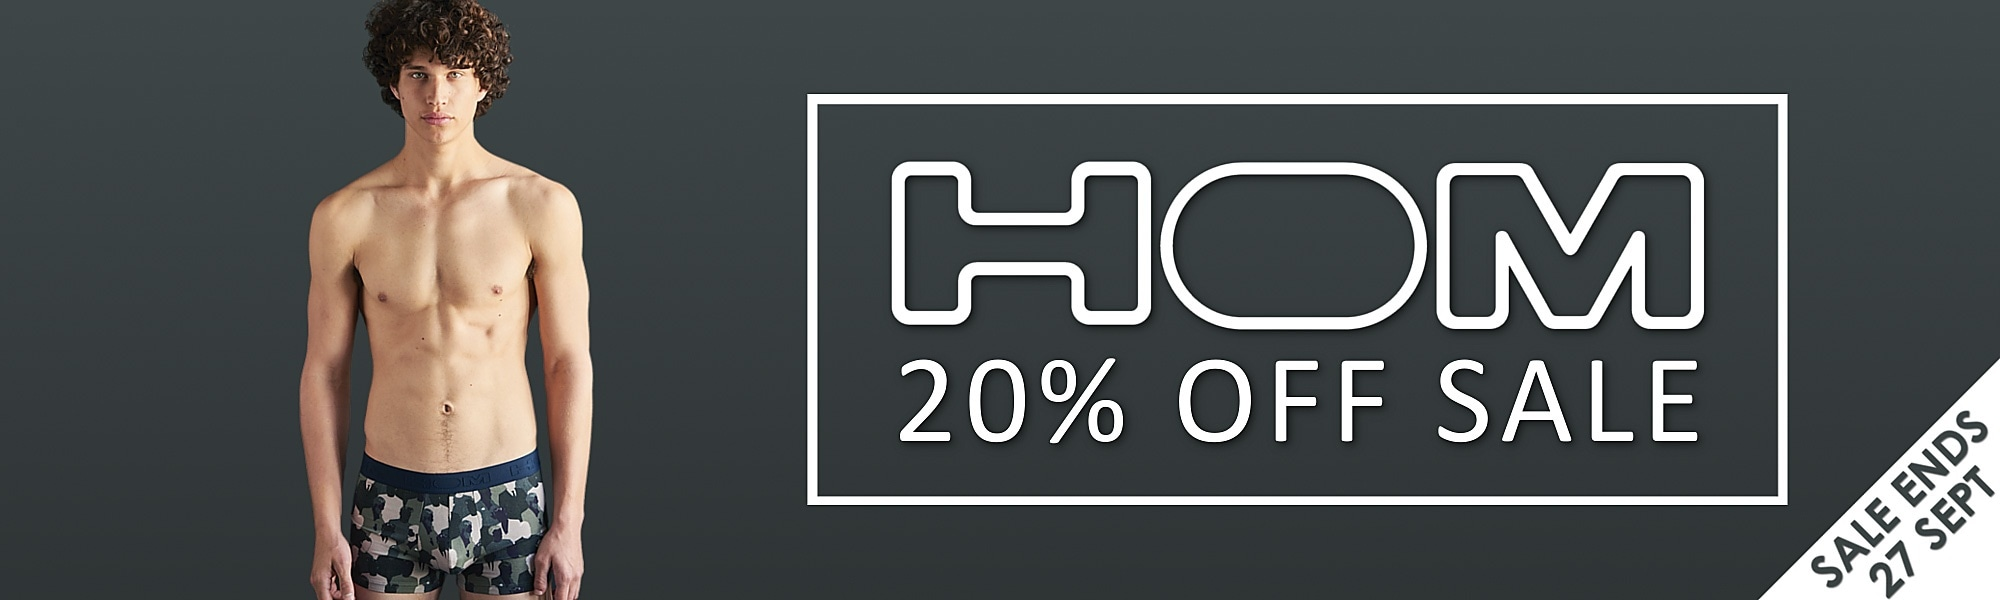 HOM 20% OFF SALE